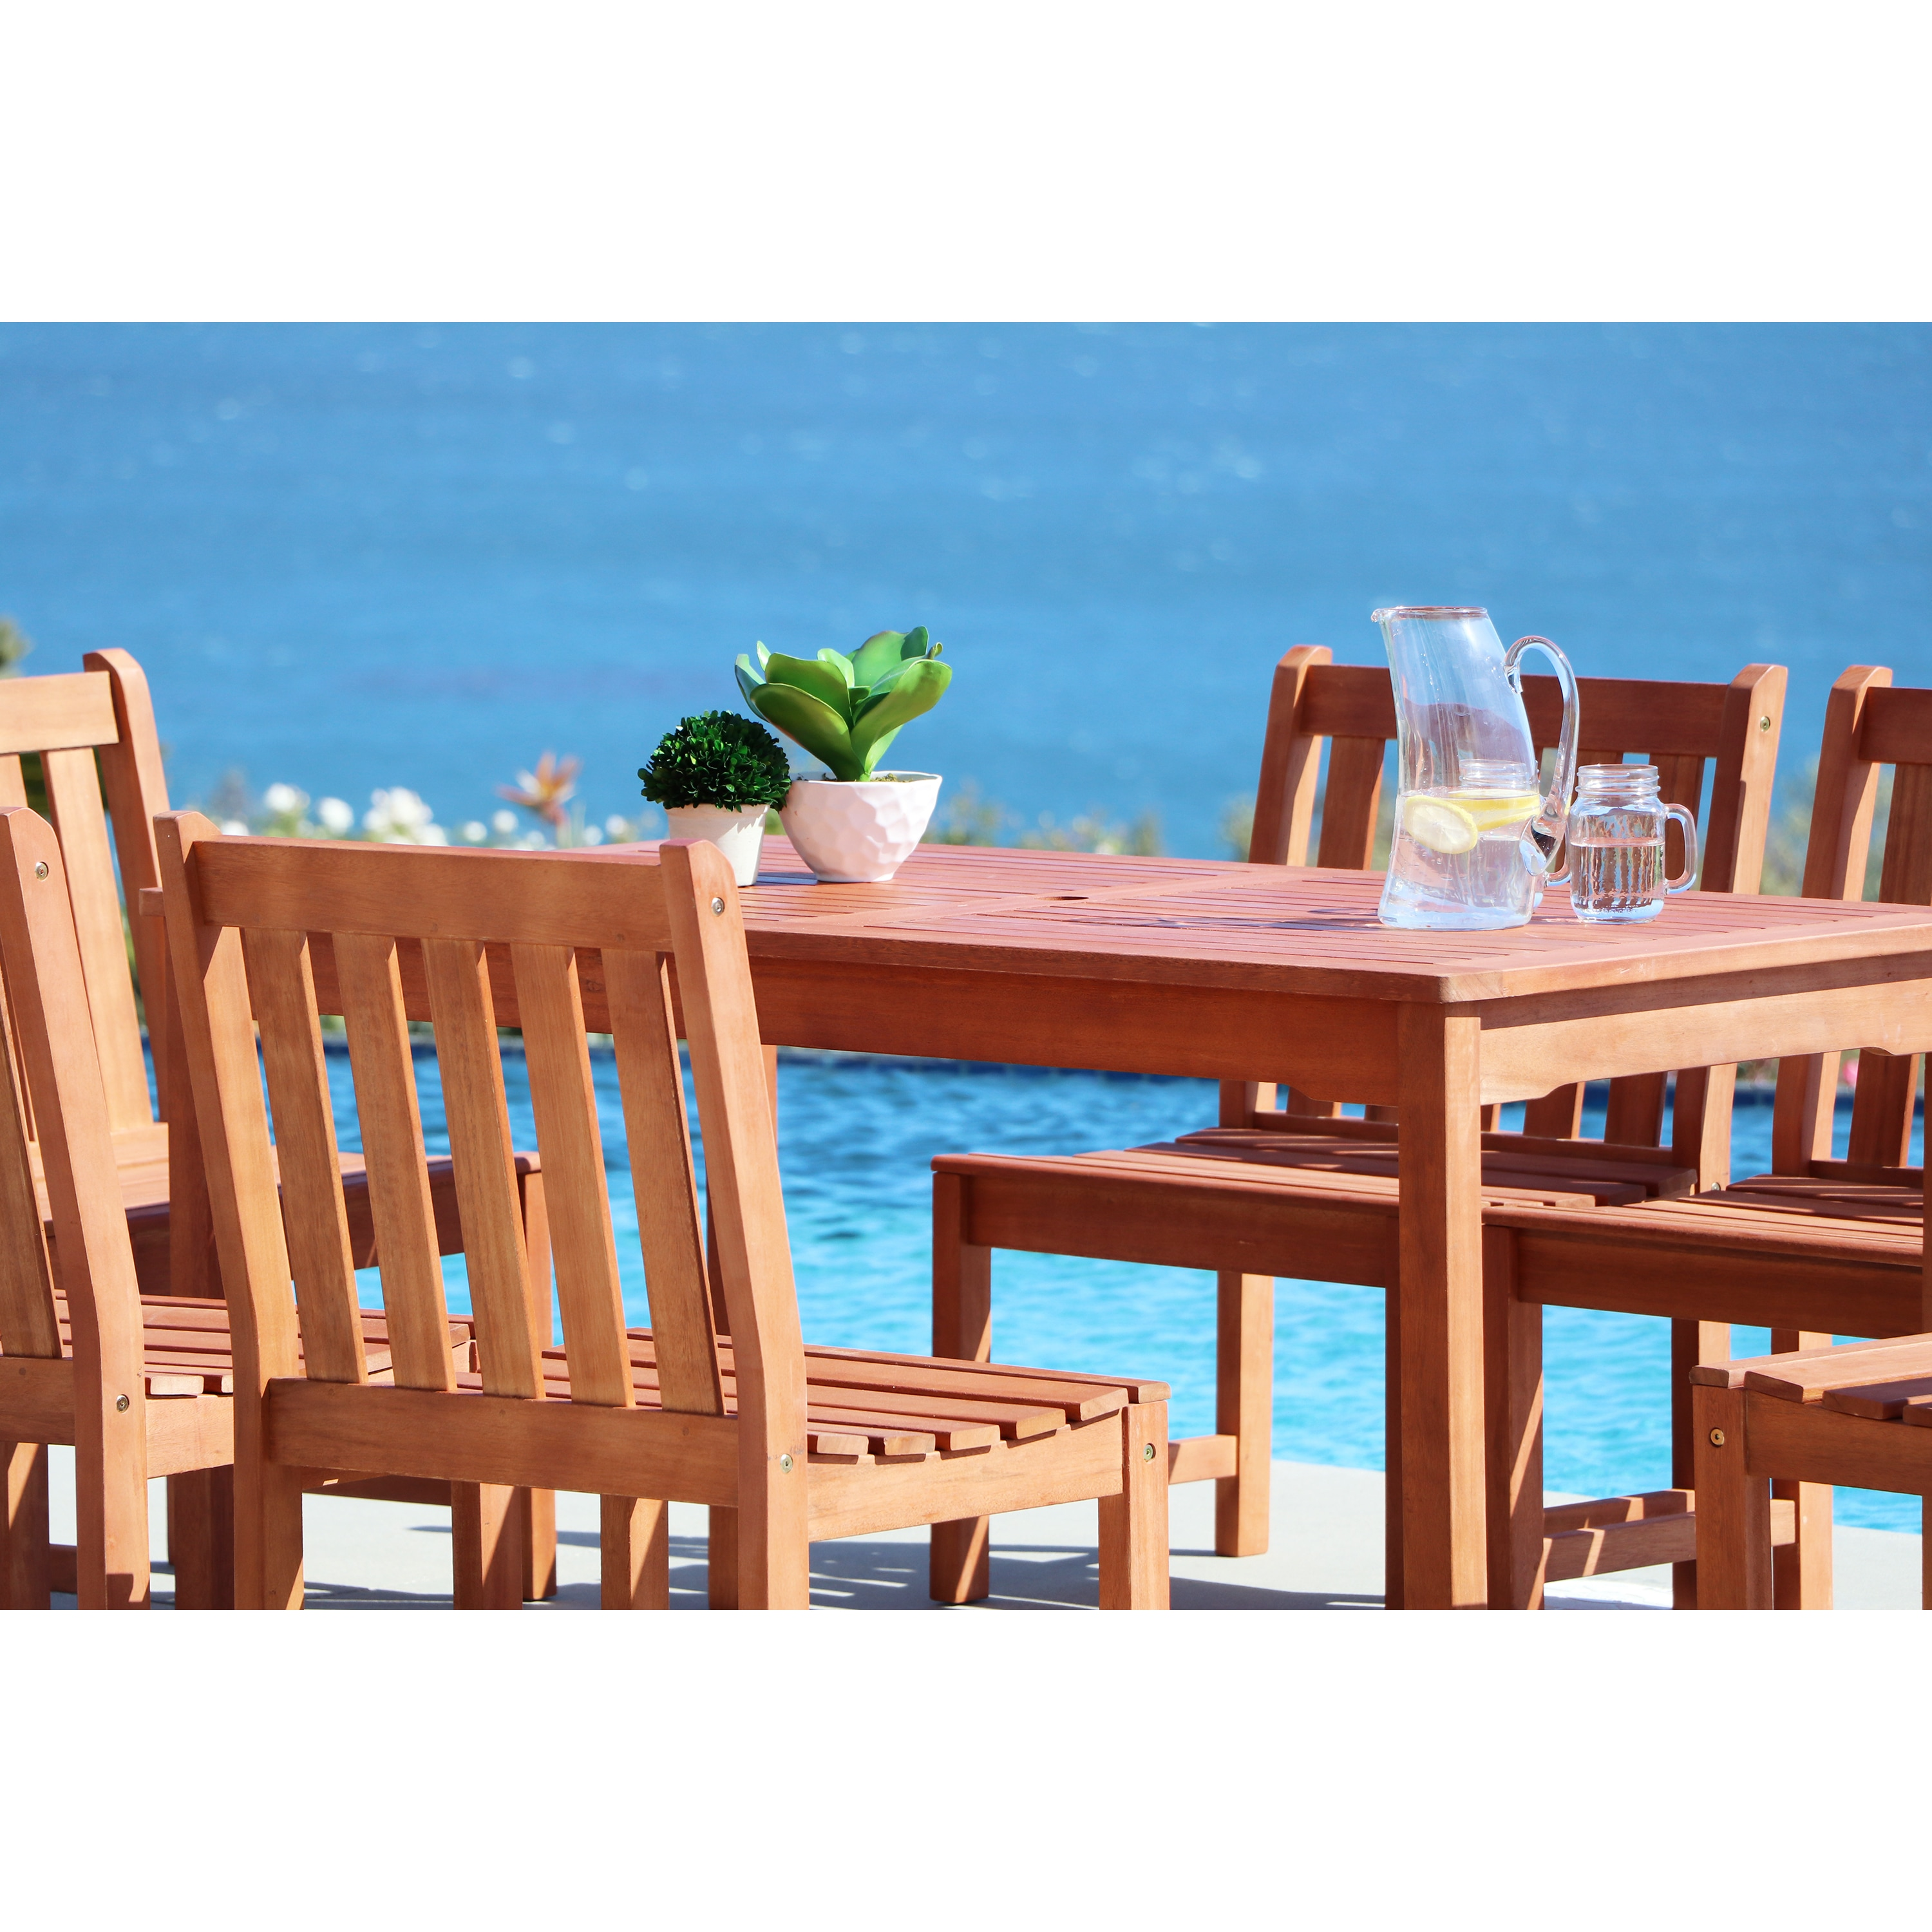 Shop Malibu Eco-friendly 6-piece Outdoor Hardwood Dining Set with ...